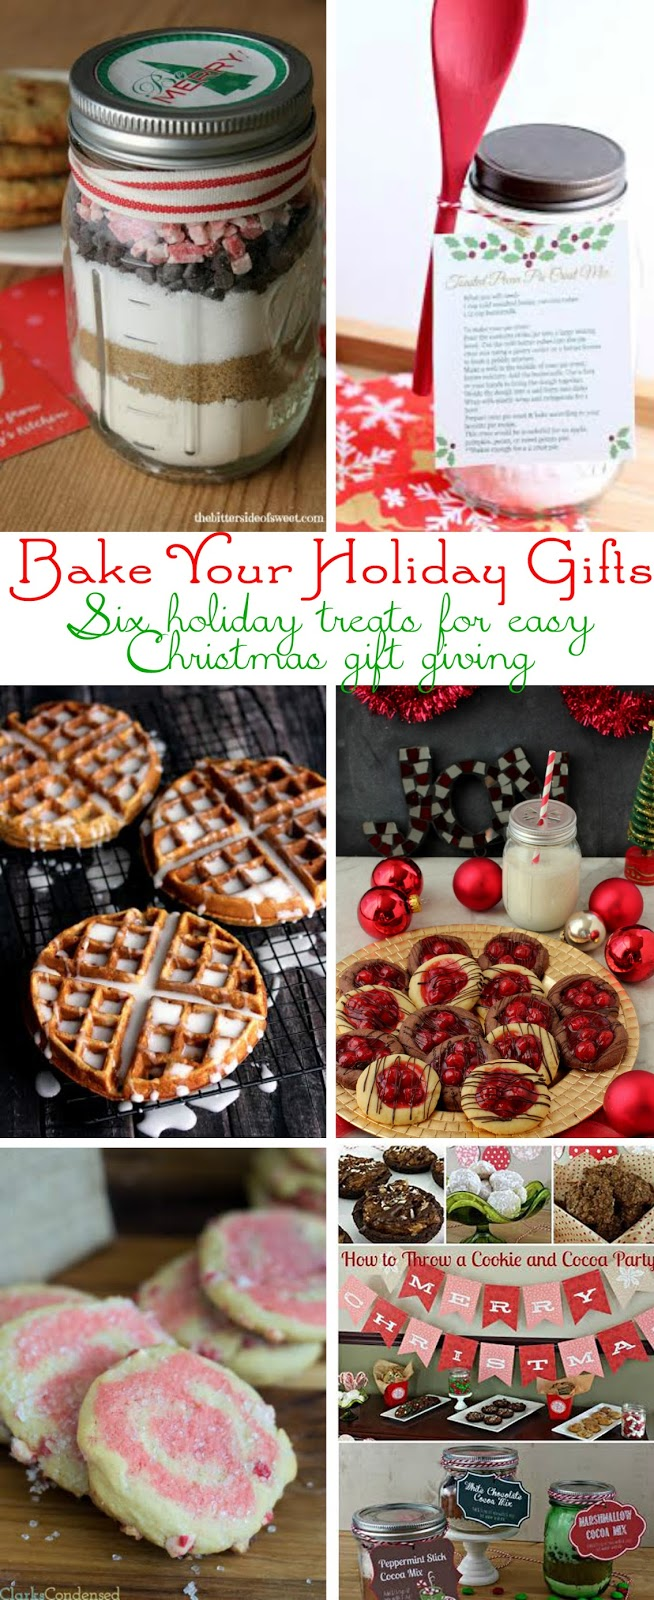 Six Holiday Gifts for Easy Christmas Gift Giving- start checking off that holiday gift list with these easy DIY edible gifts!